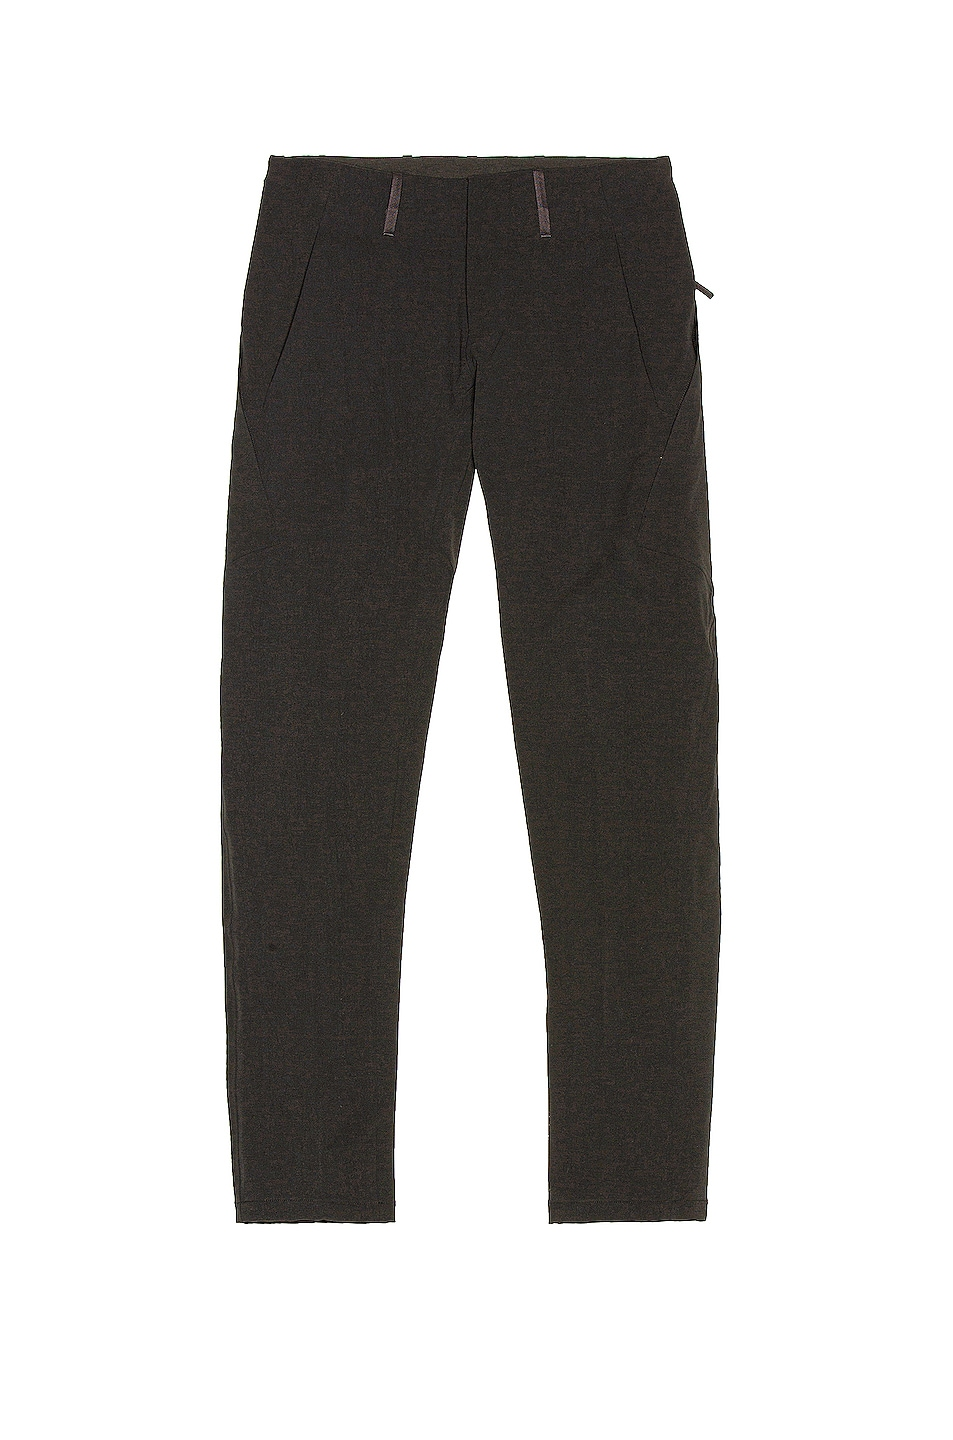 Image 1 of Veilance Align MX Pant in Black